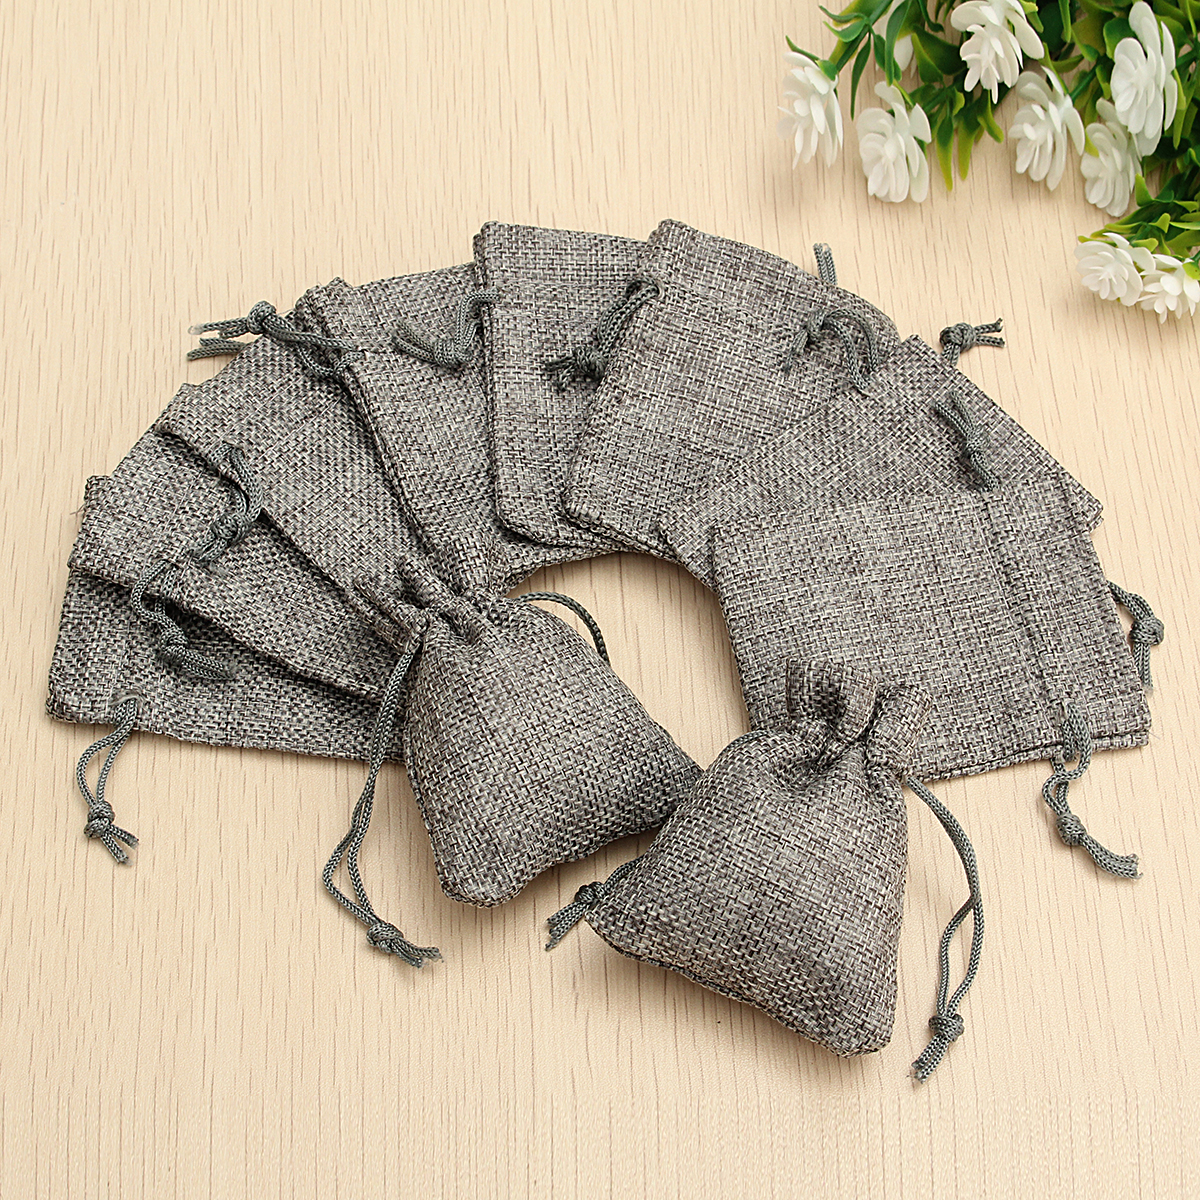 10PCS Grey Burlap Bags Jute Hessian Drawstring Sack Small Wedding Favor Gift